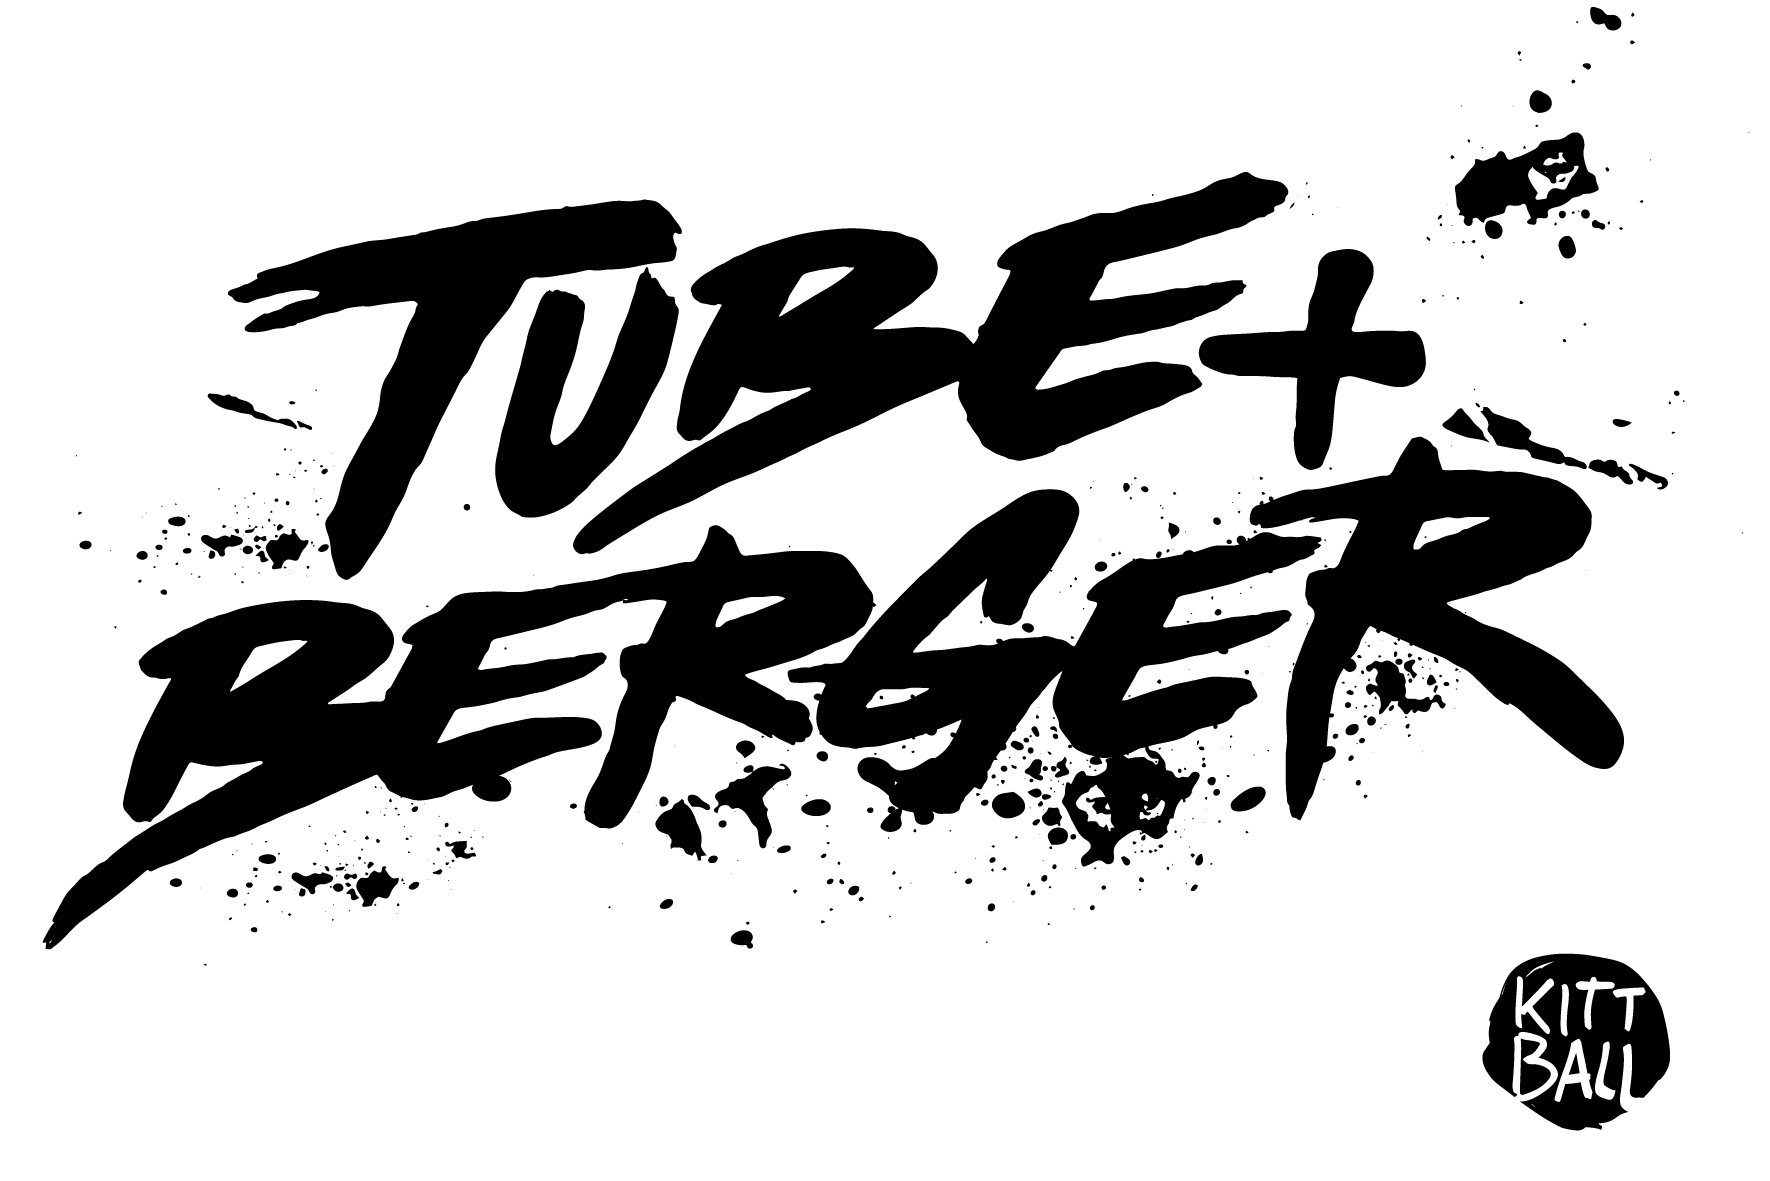 Tube und Berger Friends Productions